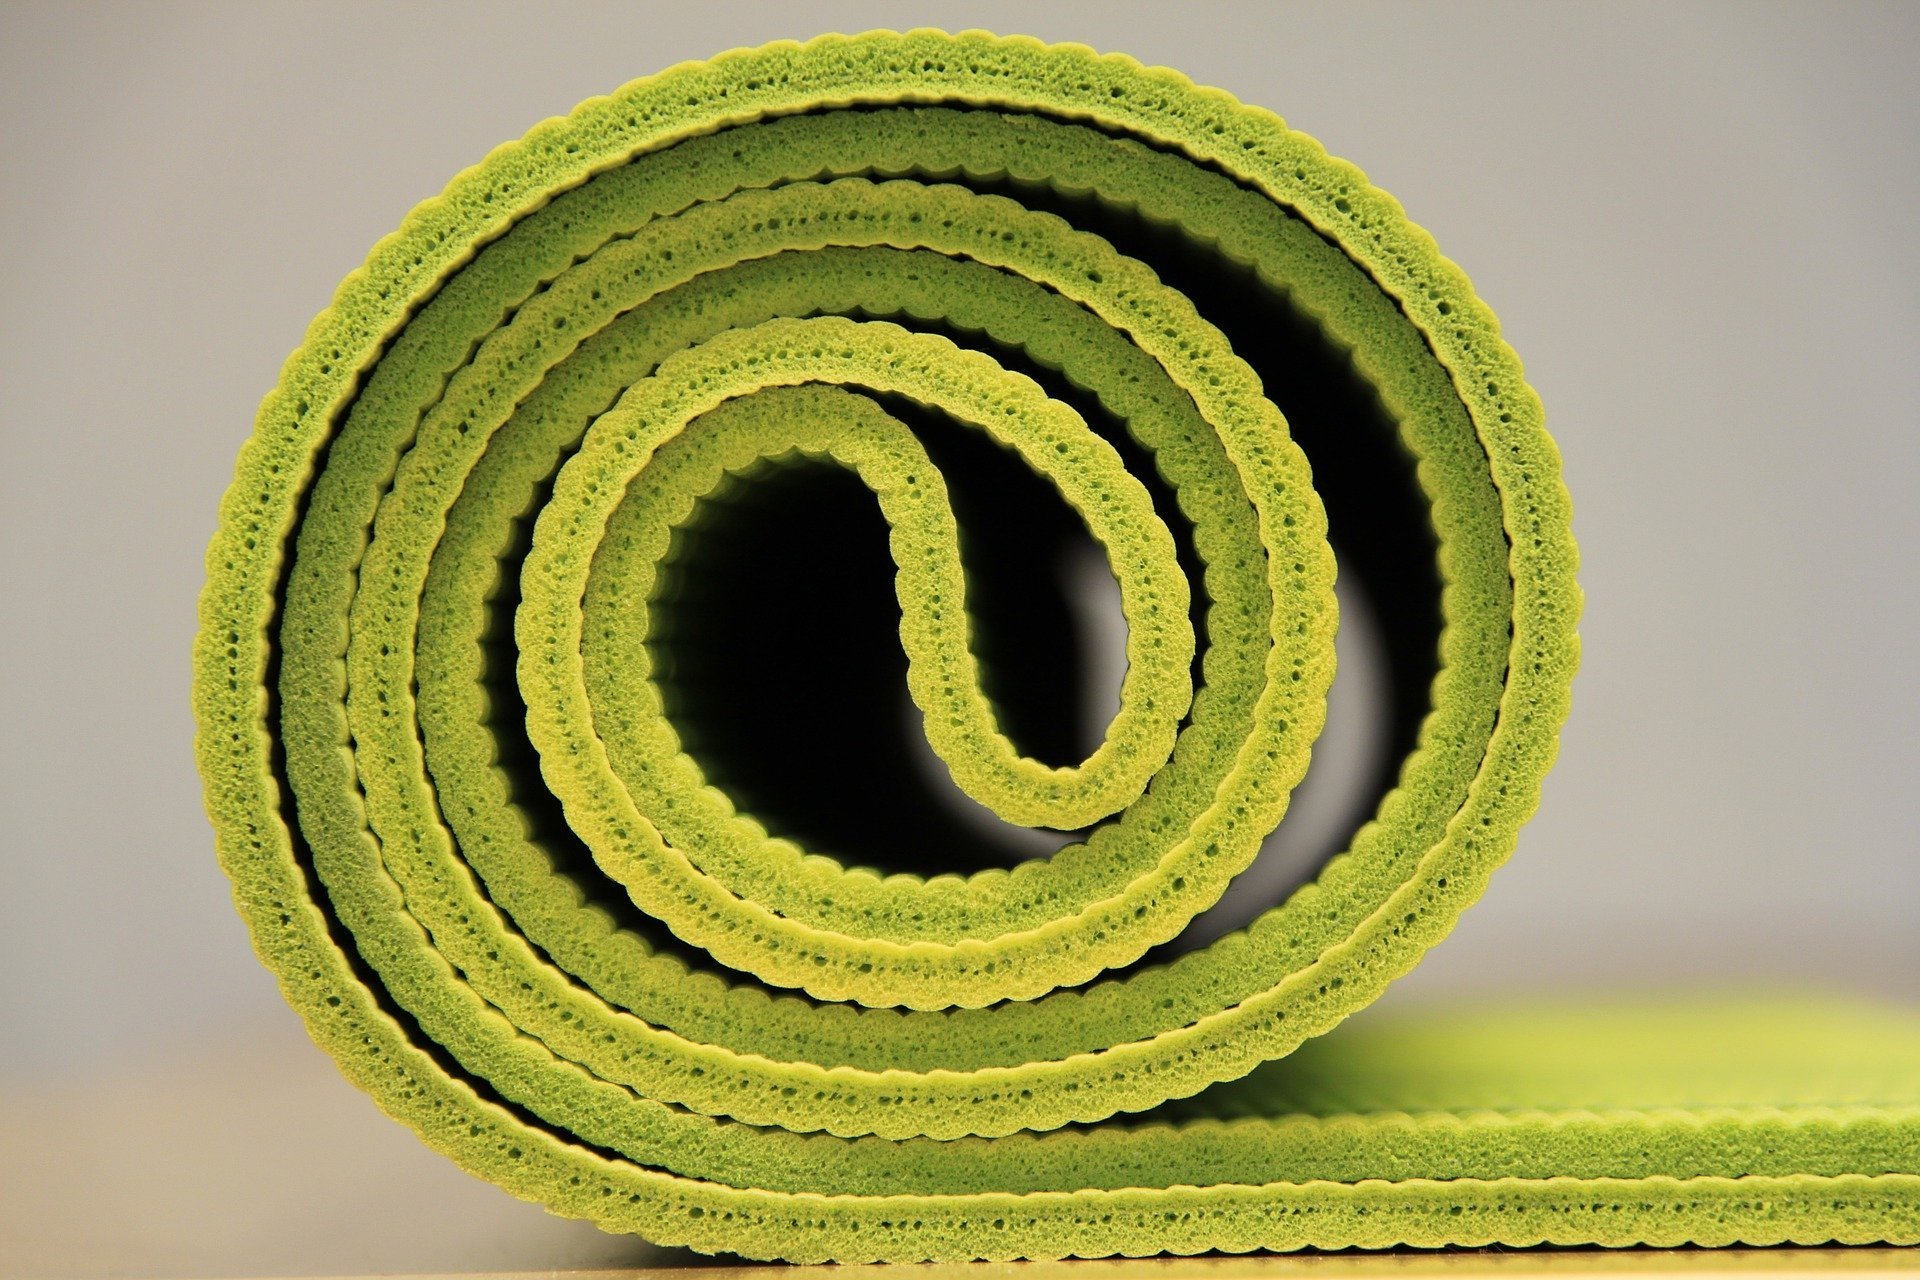 South Lakes school to host mental health day including activities such as yoga